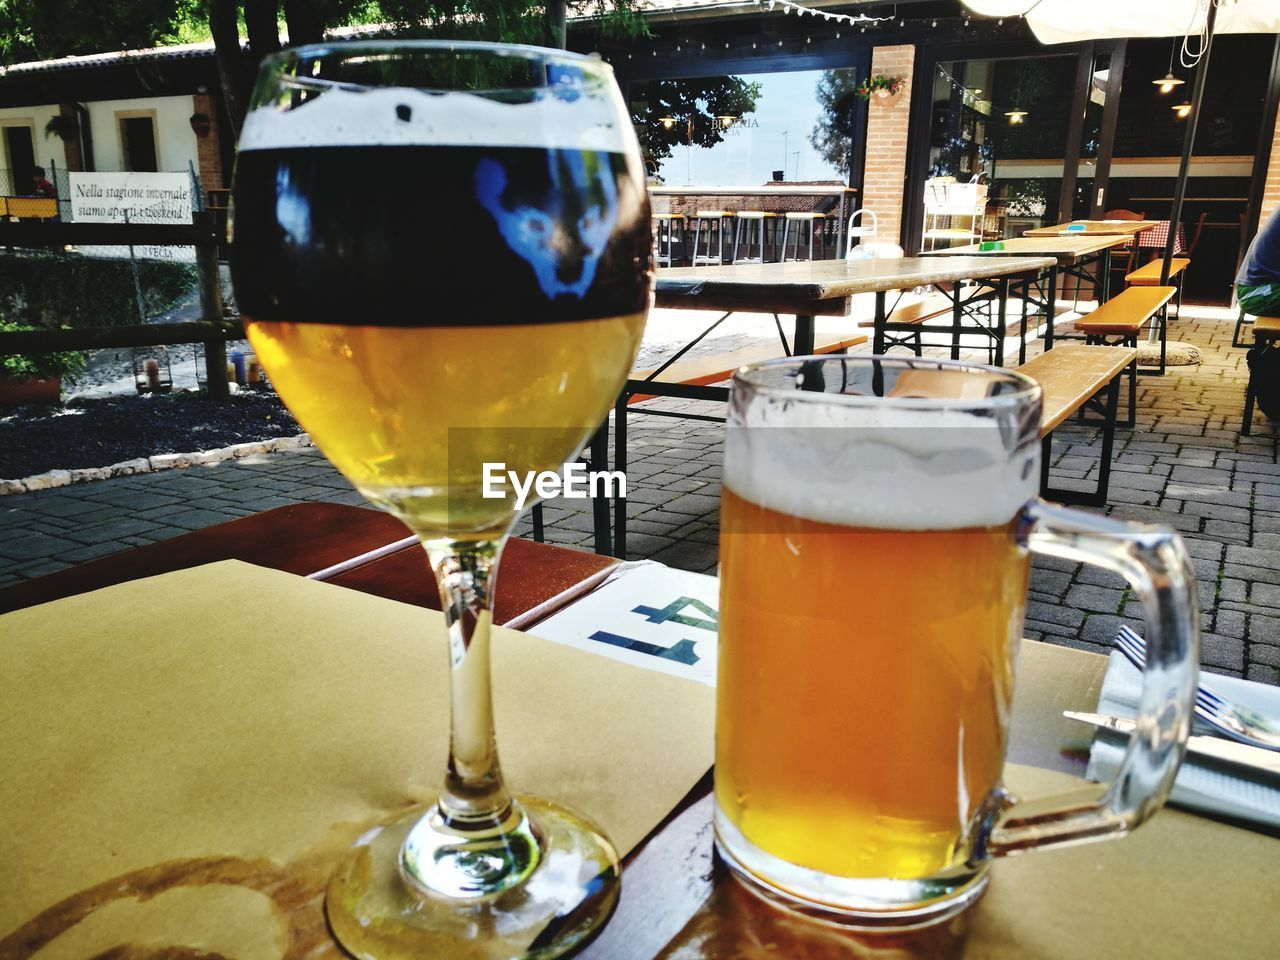 drink, refreshment, food and drink, alcohol, table, glass, beer, beer - alcohol, drinking glass, freshness, restaurant, business, still life, beer glass, household equipment, close-up, no people, frothy drink, food, focus on foreground, pint glass